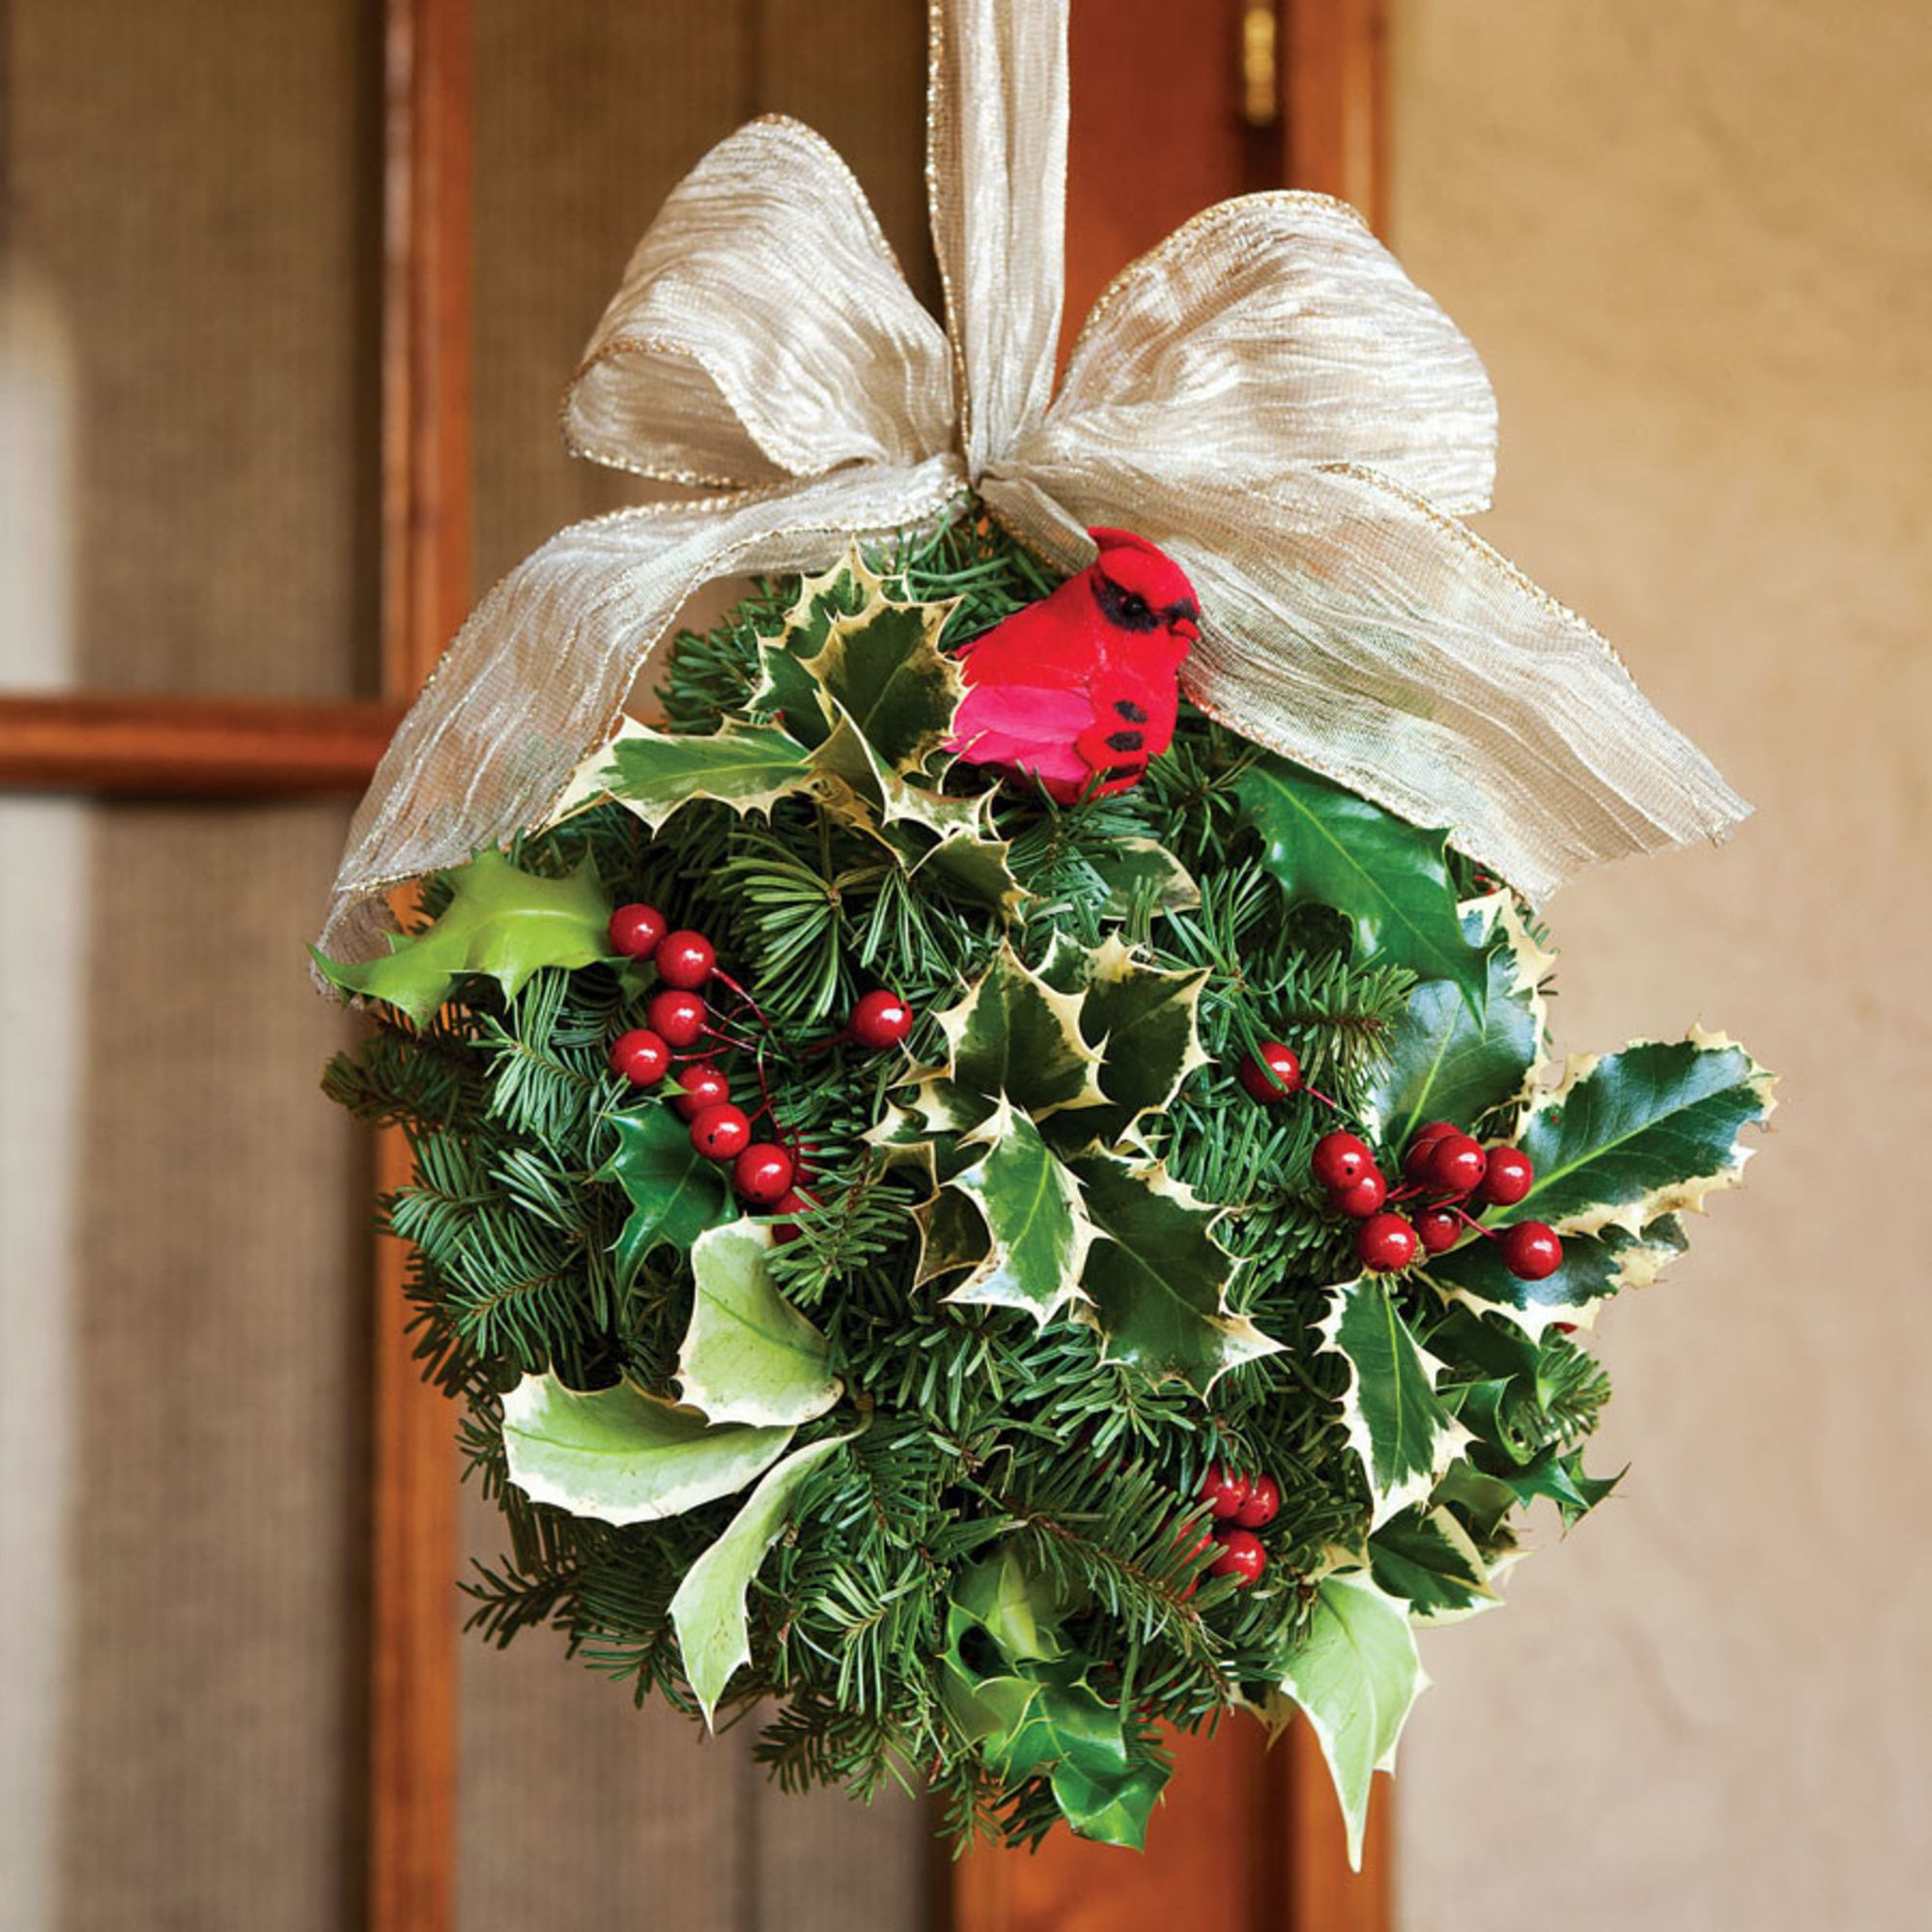 The Kissing Ball Is Another Yule Tradition! Every Berry On